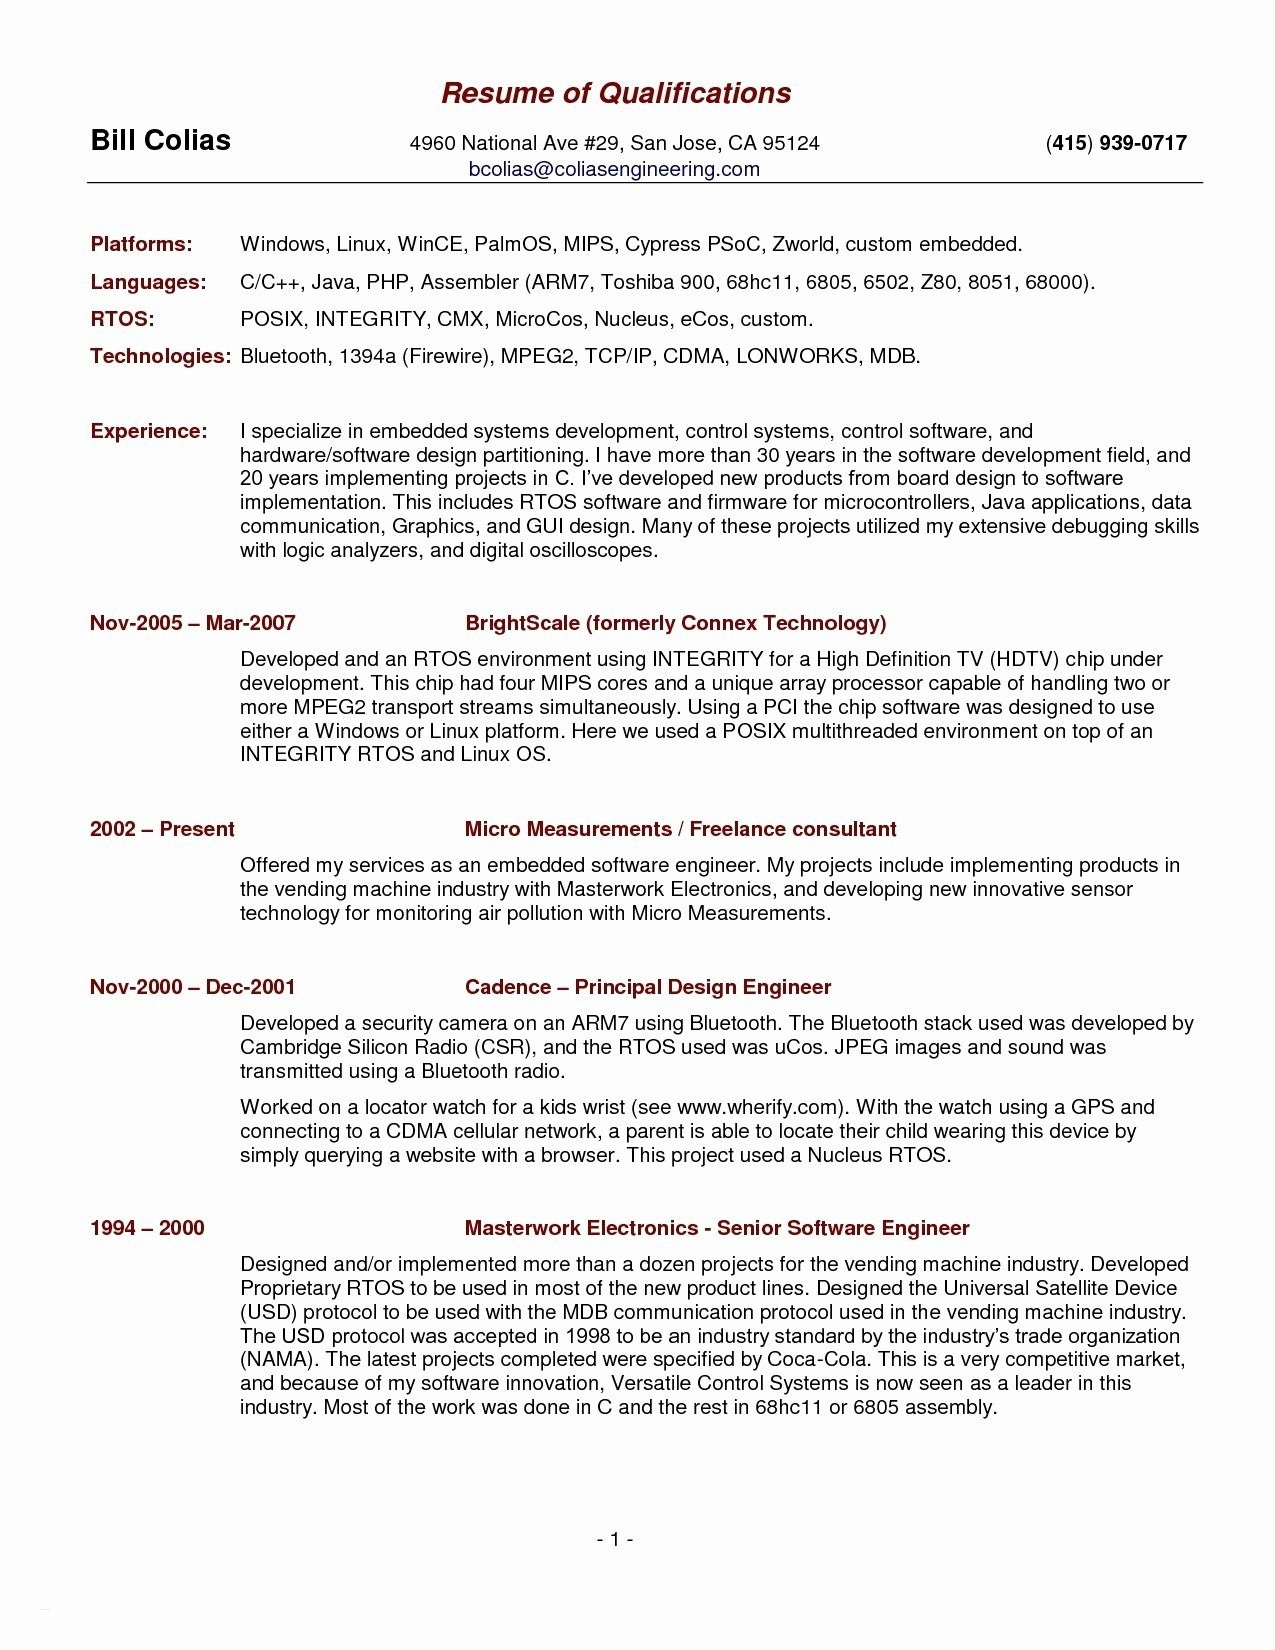 Internship Resume Template Download - Resume for Internship Lovely Luxury Grapher Resume Sample Beautiful